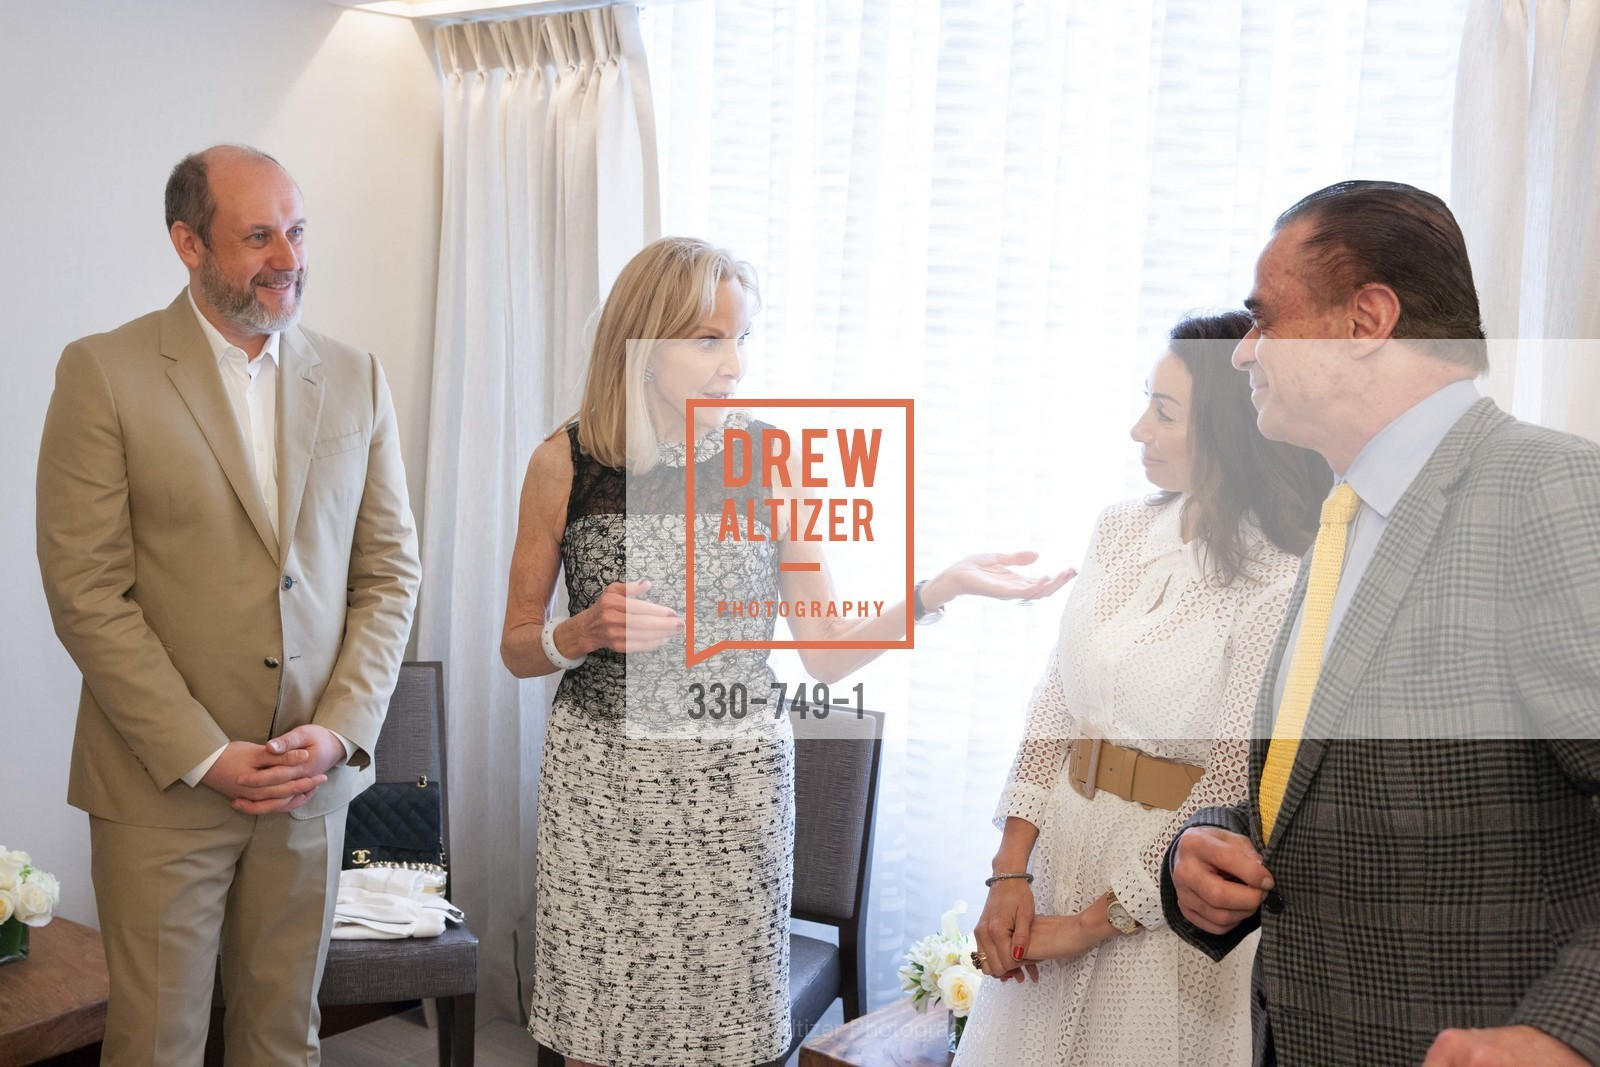 Peter Copping, Carole McNeil, PETER COPPING Meets and Greets OSCAR DELA RENTA Clients and Associates at NEIMAN MARCUS, US, May 22nd, 2015,Drew Altizer, Drew Altizer Photography, full-service agency, private events, San Francisco photographer, photographer california